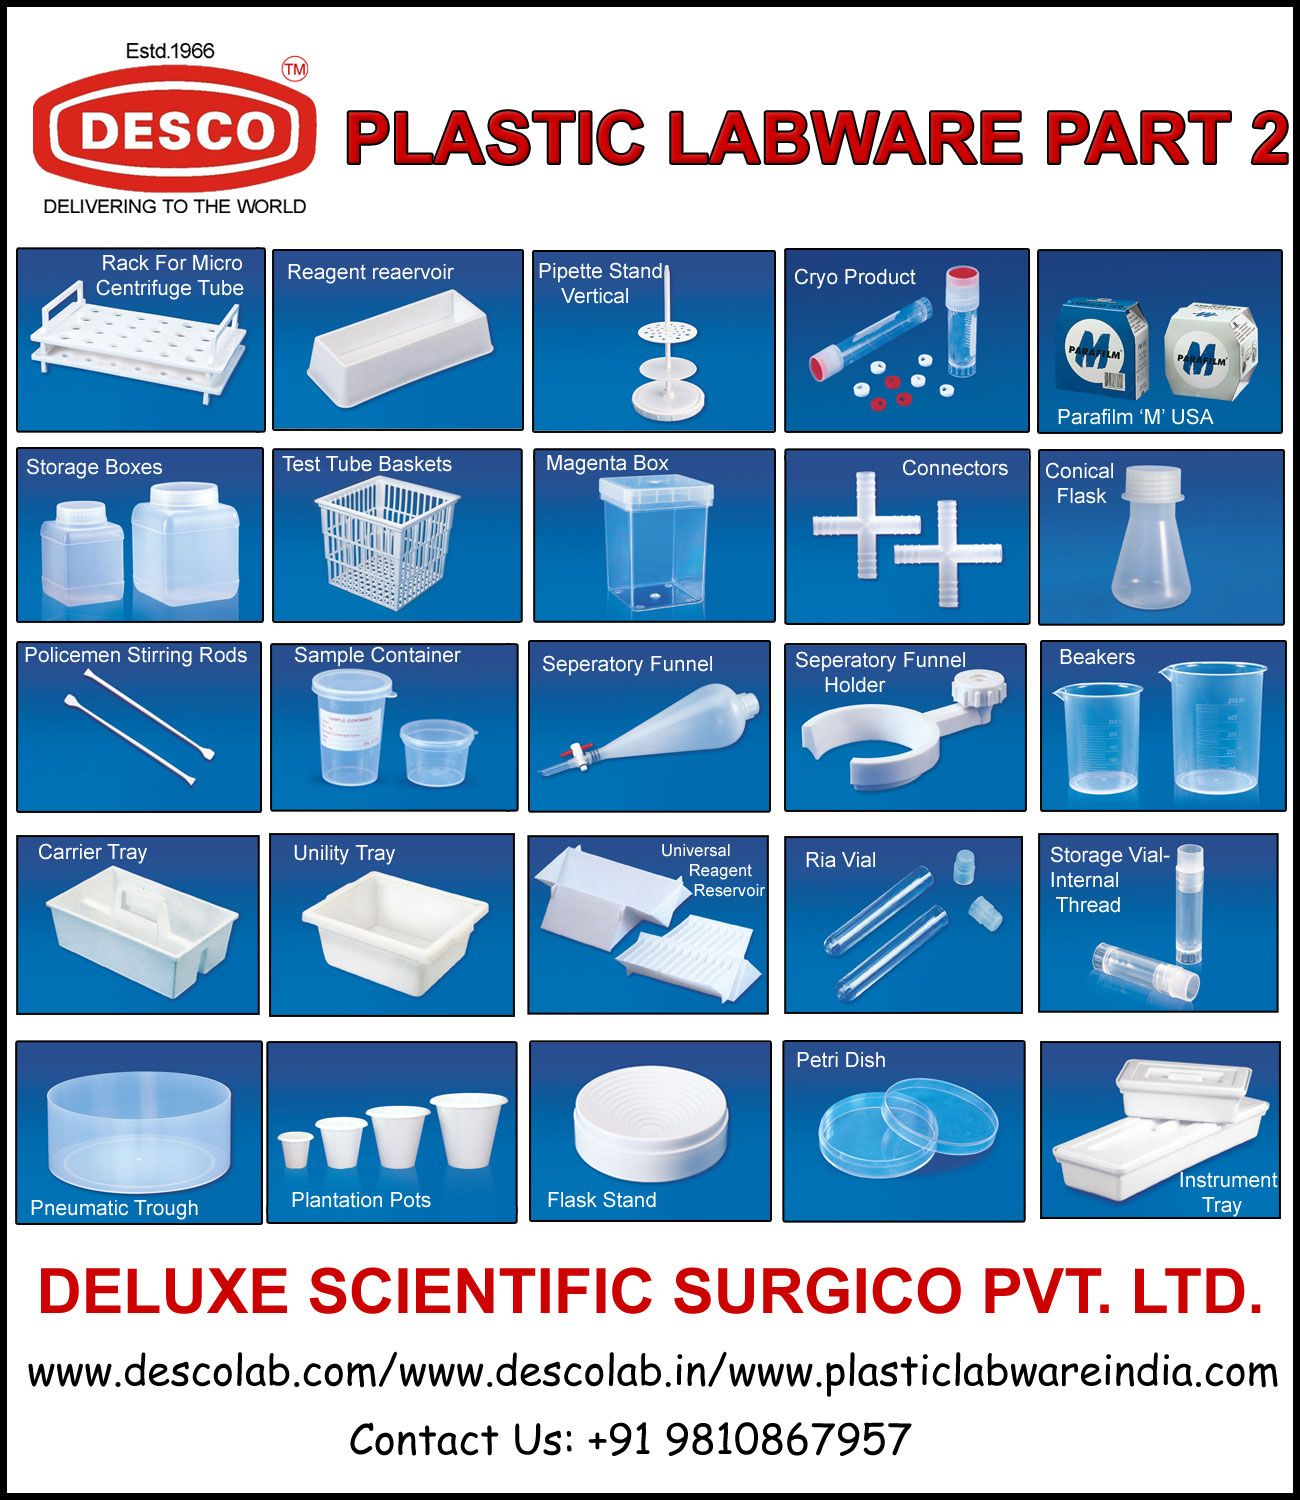 Desco A Leading Manufacturer Supplier Exporter Of India Holds A Wide Range Of Plastic Labware Products Such As Rack For M Test Tube Conical Flask Beakers